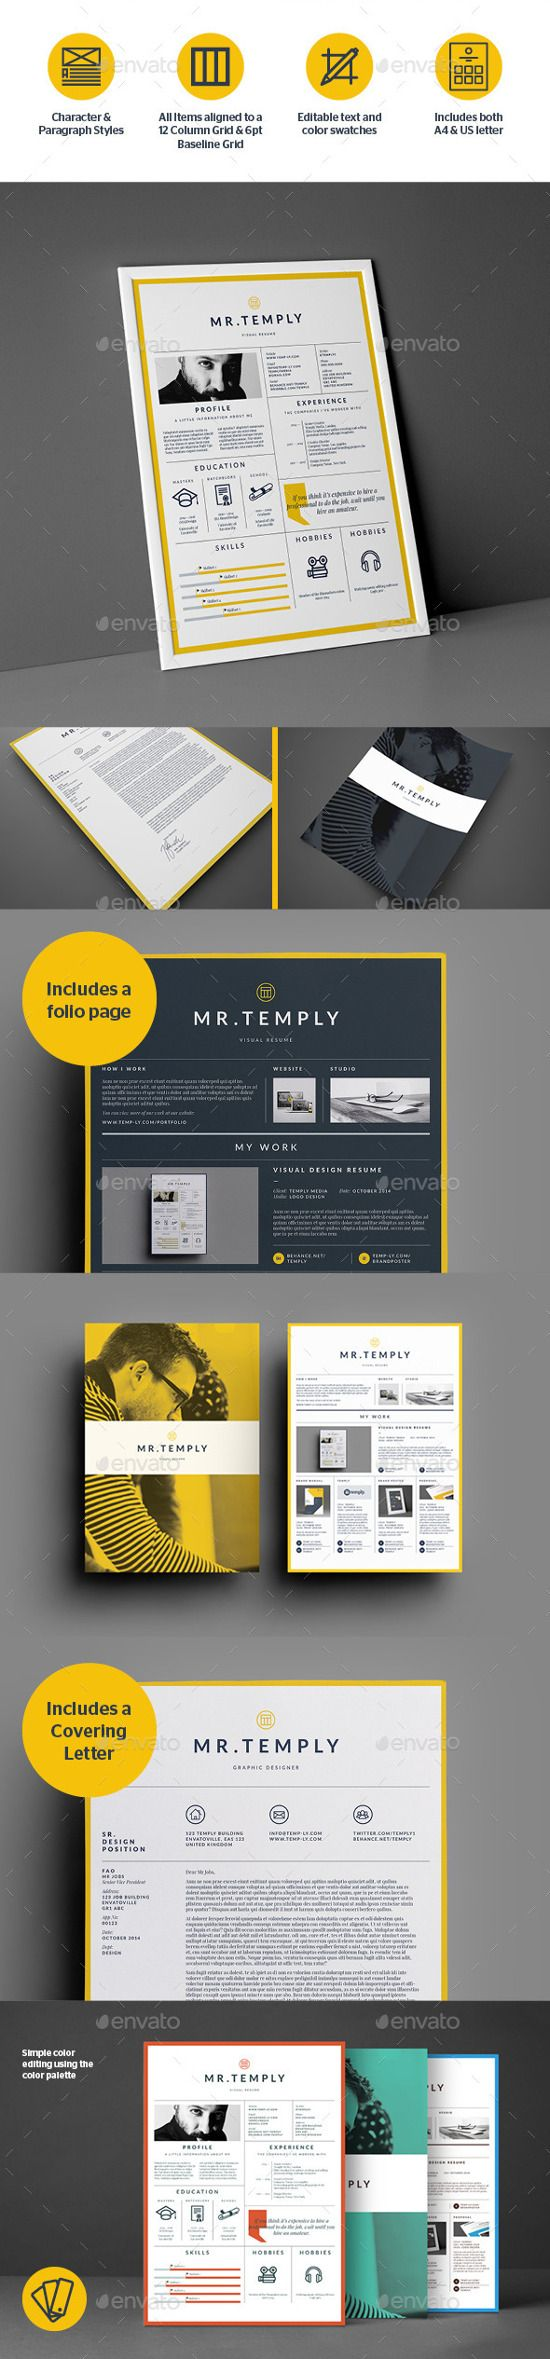 1221 best Infographic Visual Resumes images on Pinterest ...